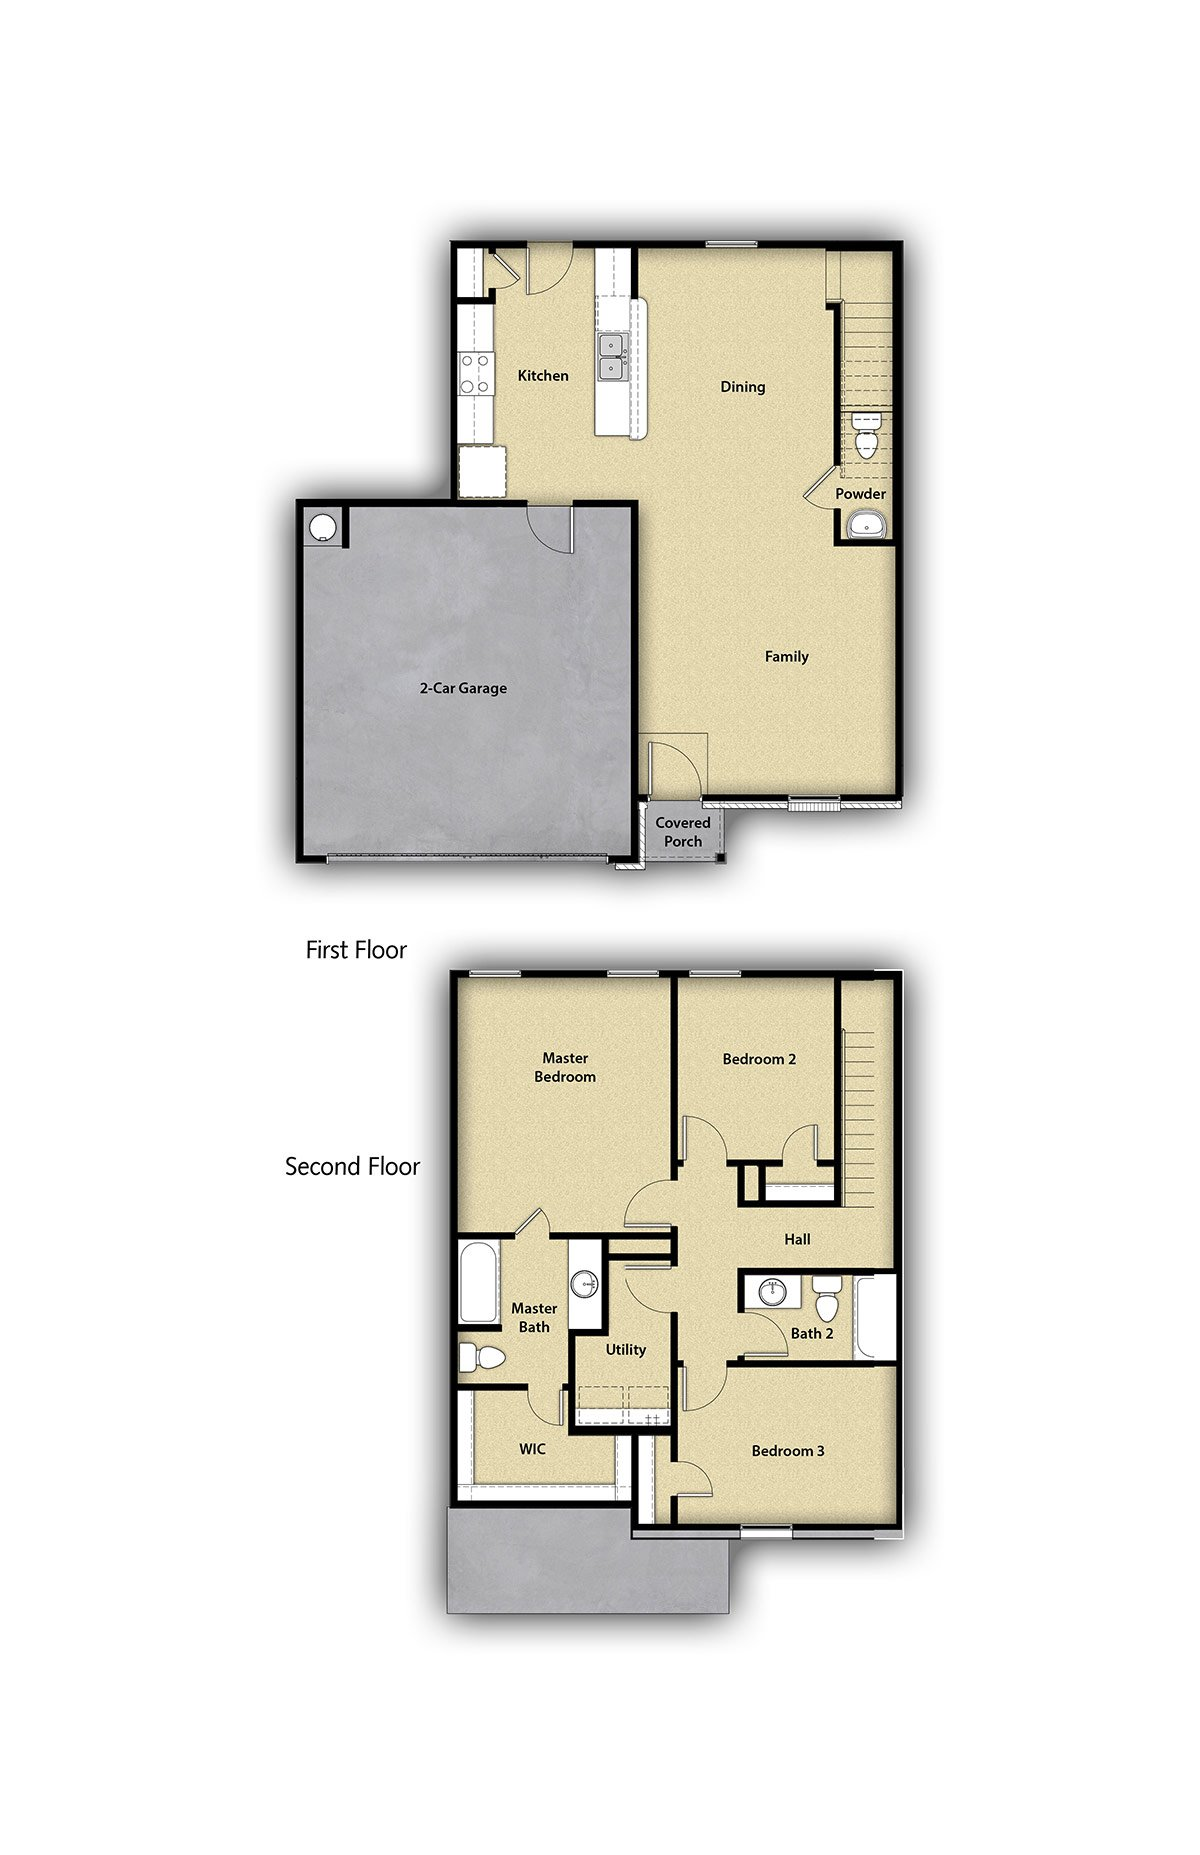 Macdona, TX Homes for Sale - New 3BR, 2.5BA 2 Story House on affordable to build home plans, inexpensive two-story house plans, simple affordable house plans, 2014 best house plans, affordable home designs, affordable house plans to build, affordable home builders, affordable house plans a frame, affordable modern home plans, affordable home building, affordable open floor plans, affordable modern prefab homes, affordable 6 bedroom house plans, affordable housing design, affordable 4 bedroom house plans, affordable log homes, affordable home remodeling, affordable house plans 2000 sq, affordable home furniture, affordable duplex plans,